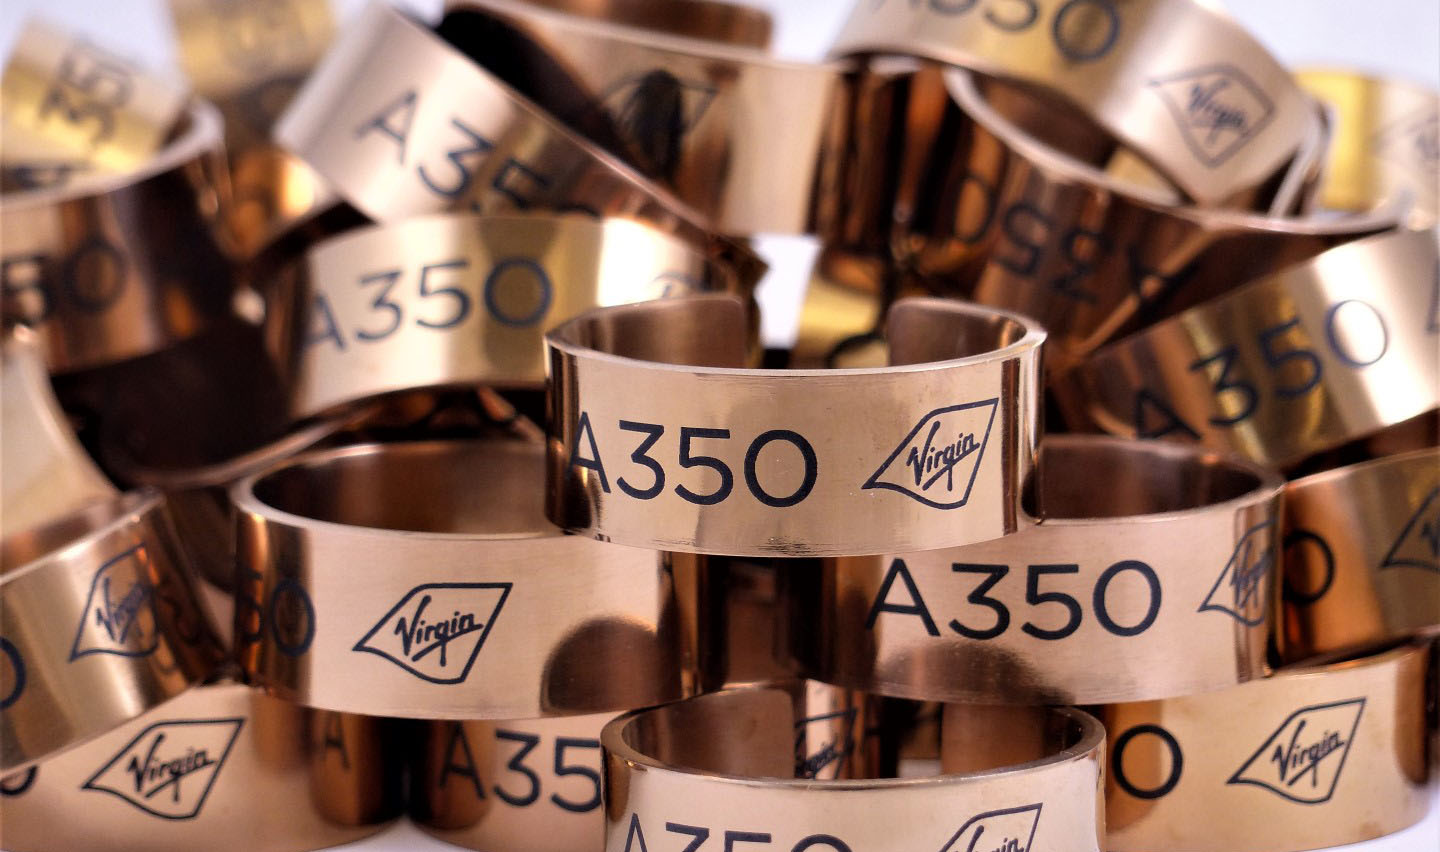 Laser marked metal napkin rings with a black ceramic compound.